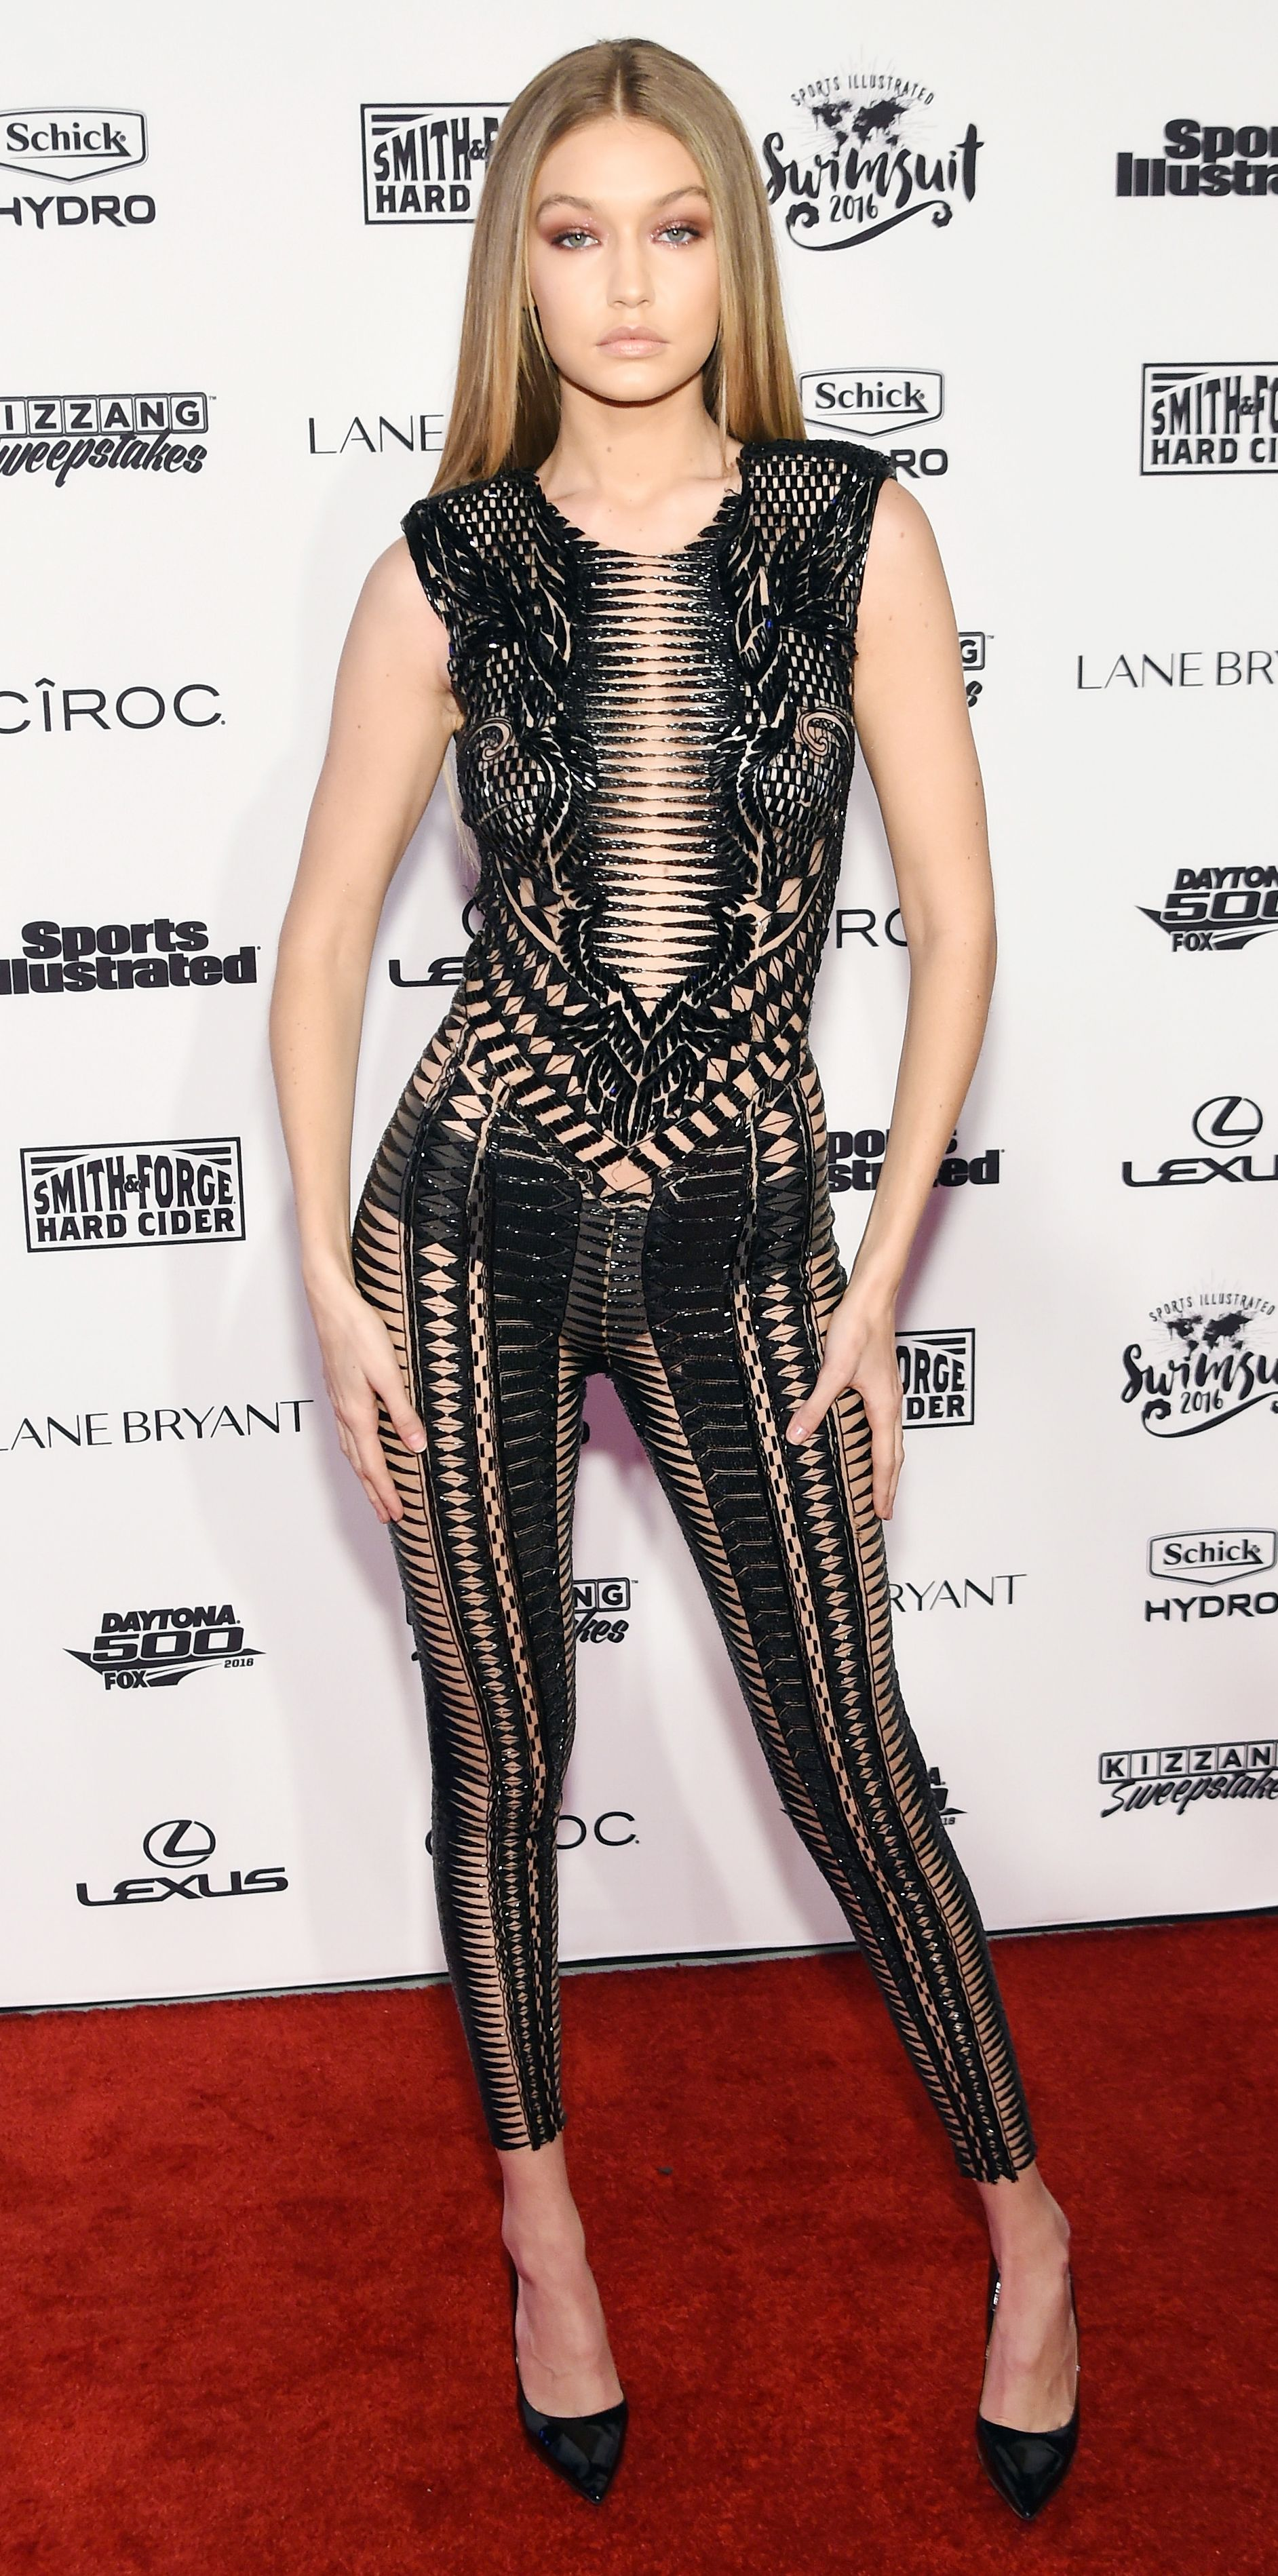 4a2aa4ee120 ... a commotion at the Sports Illustrated Swimsuit Issue Event in what  might be the sexiest jumpsuit ever—a black bead-embroidered sheer Julien  Macdonald ...